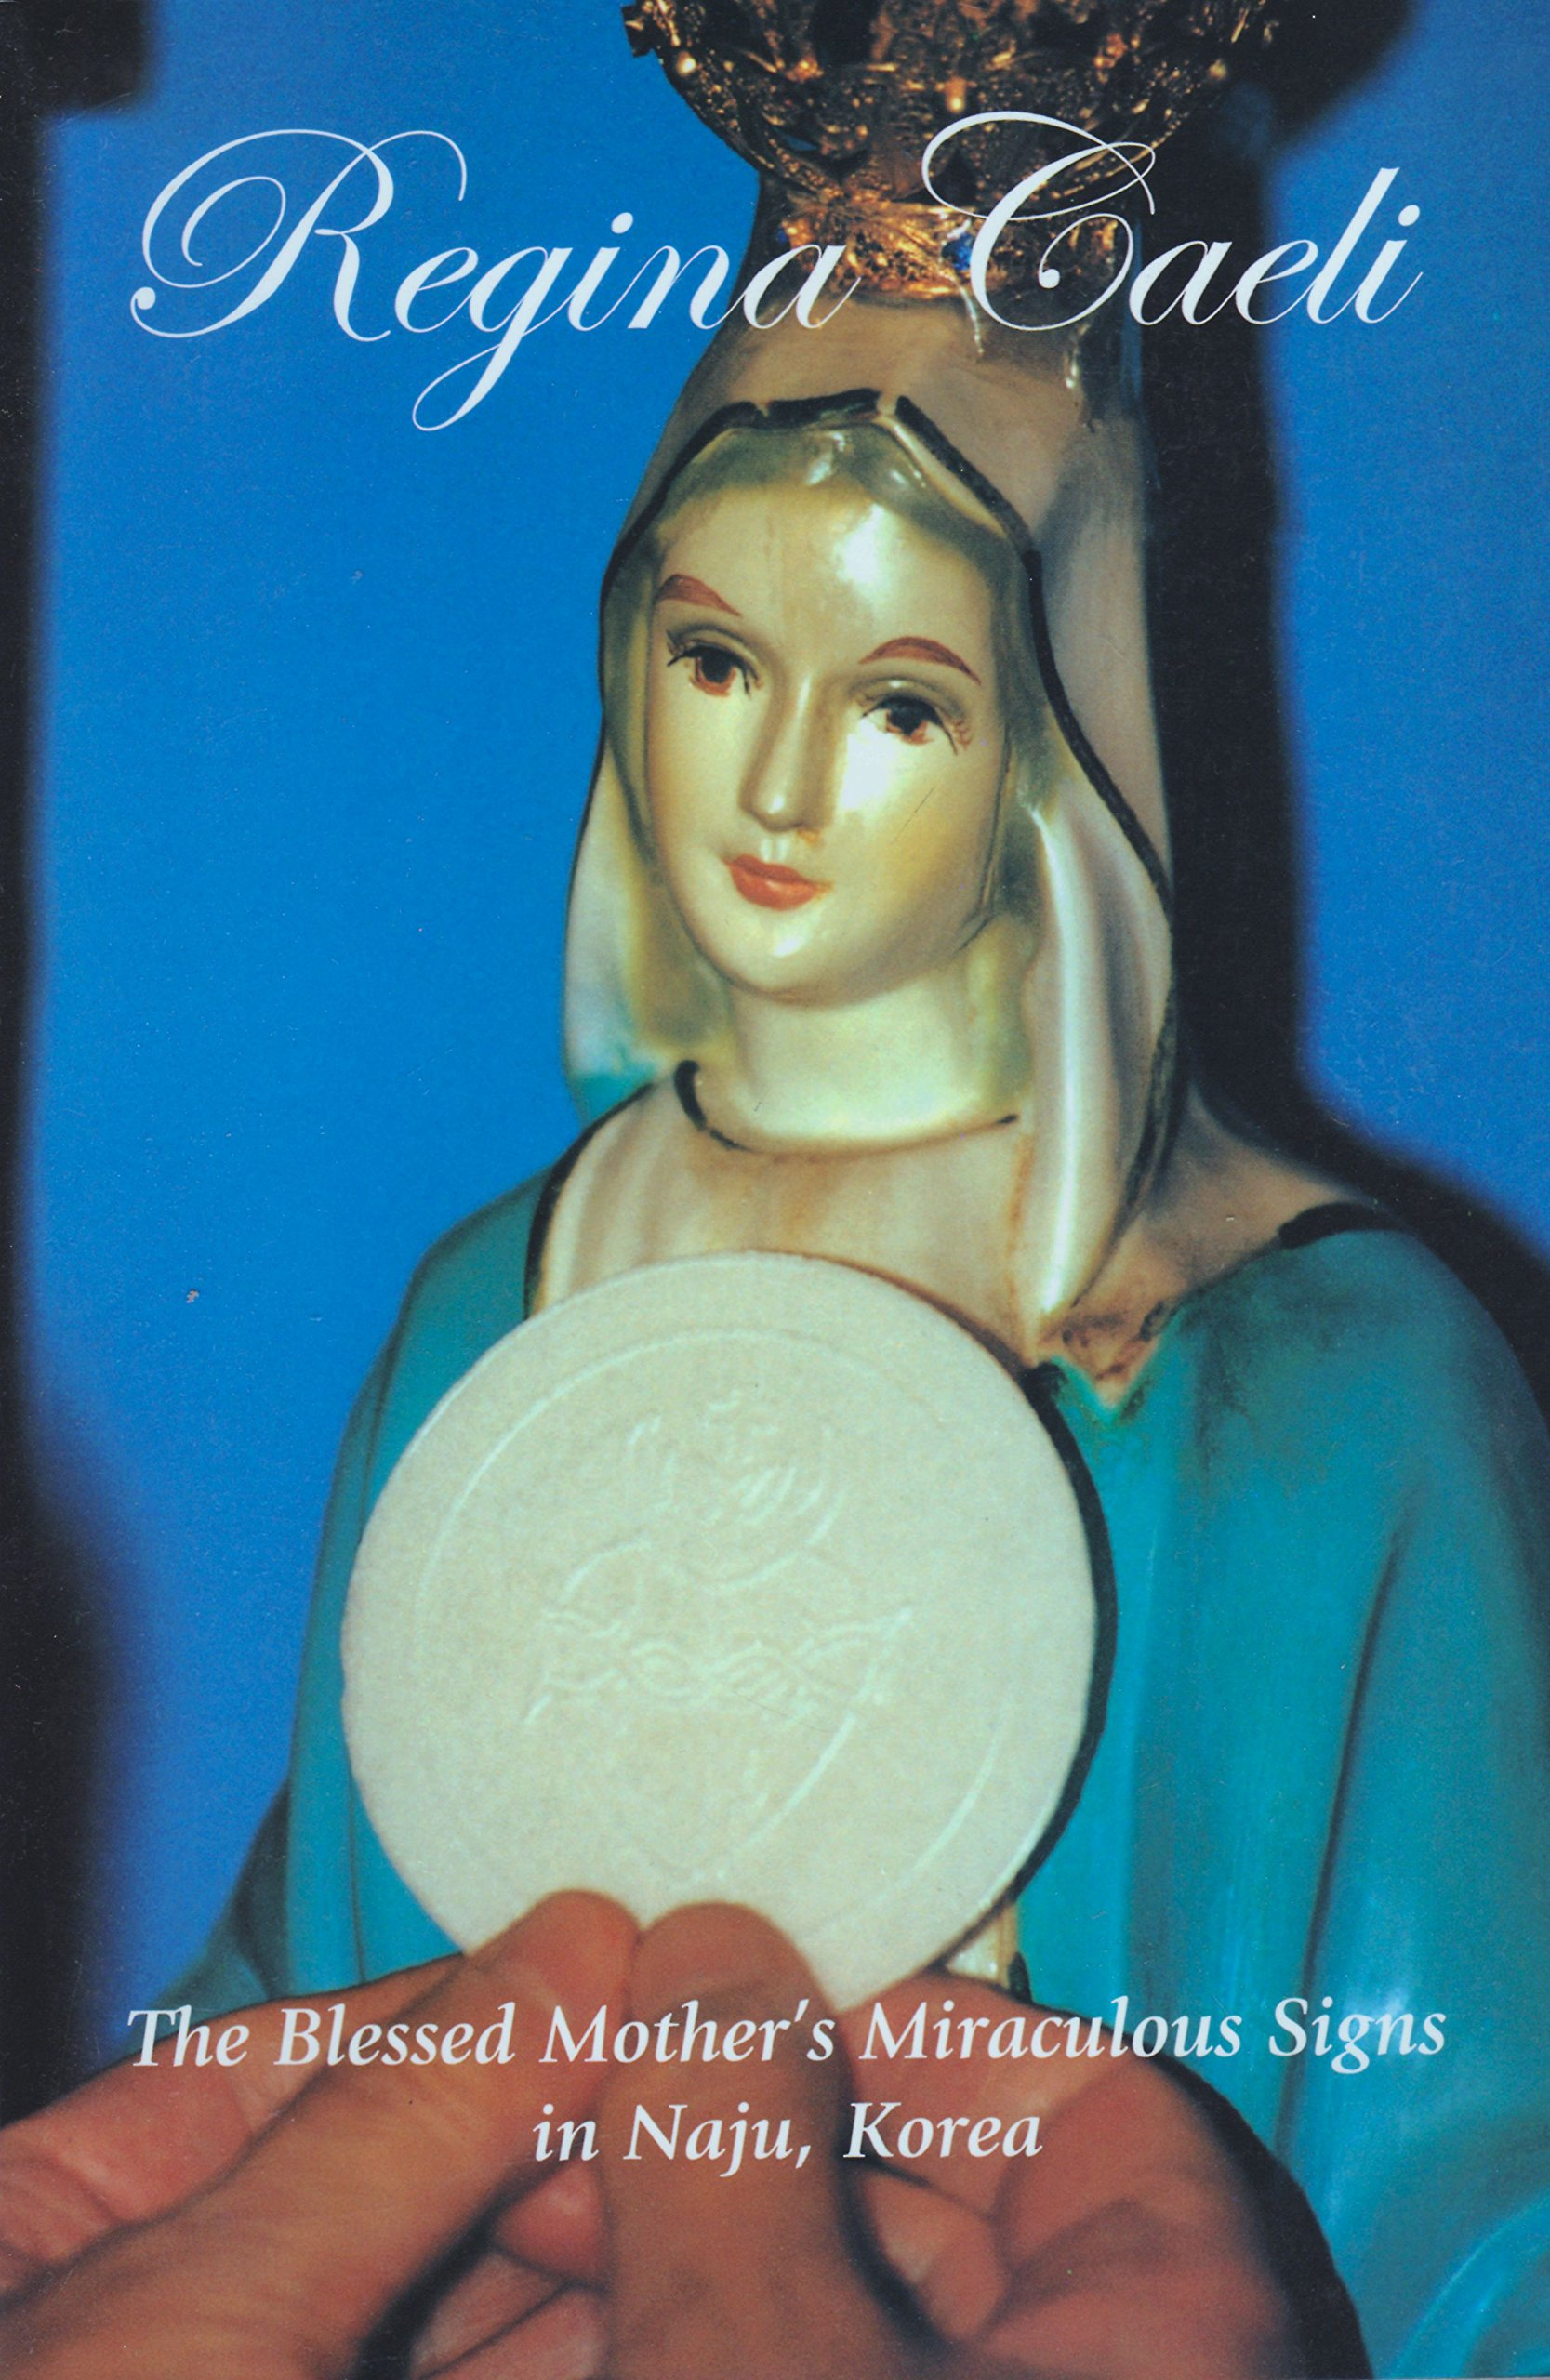 Regina Caeli: The Blessed Mother's Miraculous Signs in Naju